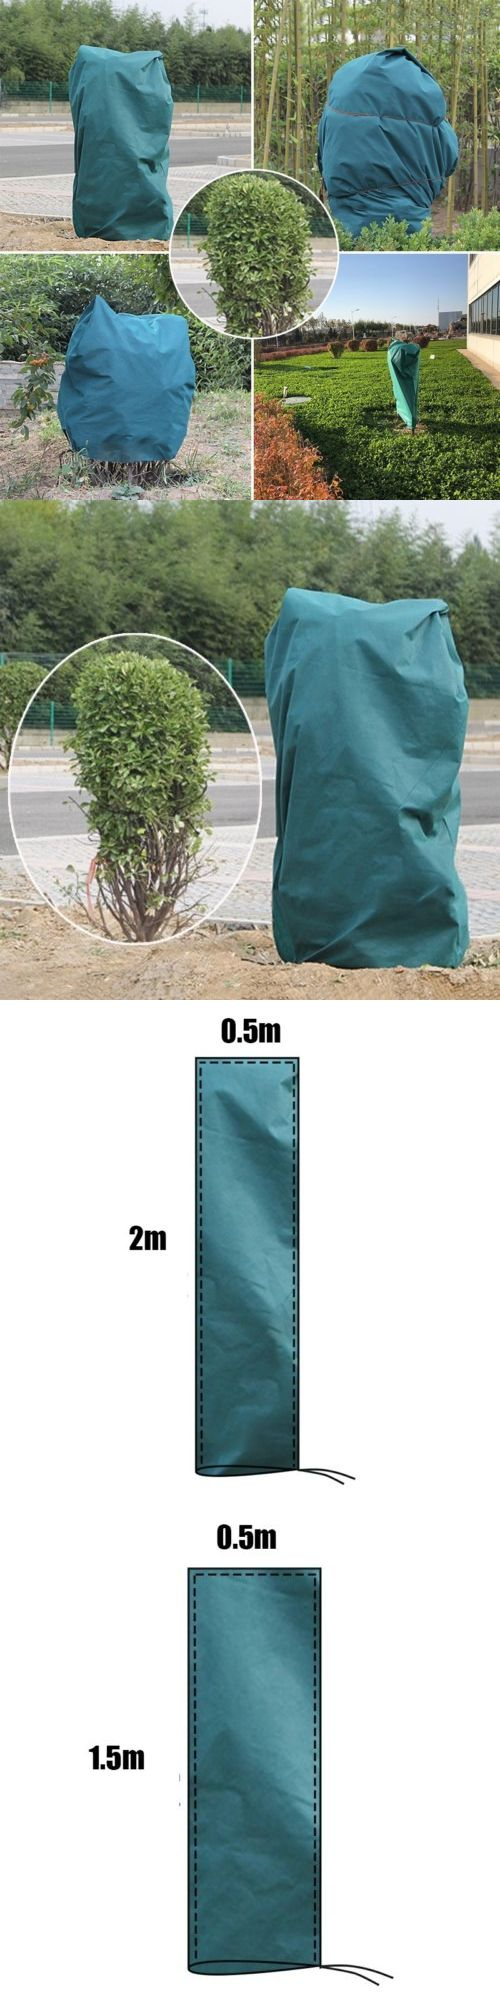 Frost Protection 139001 Winter Warm Worth Plant Cover Yard Garden Tree Shrub Cover Frost Protection Bag Buy It Now Only Garden Trees Plant Covers Shrubs